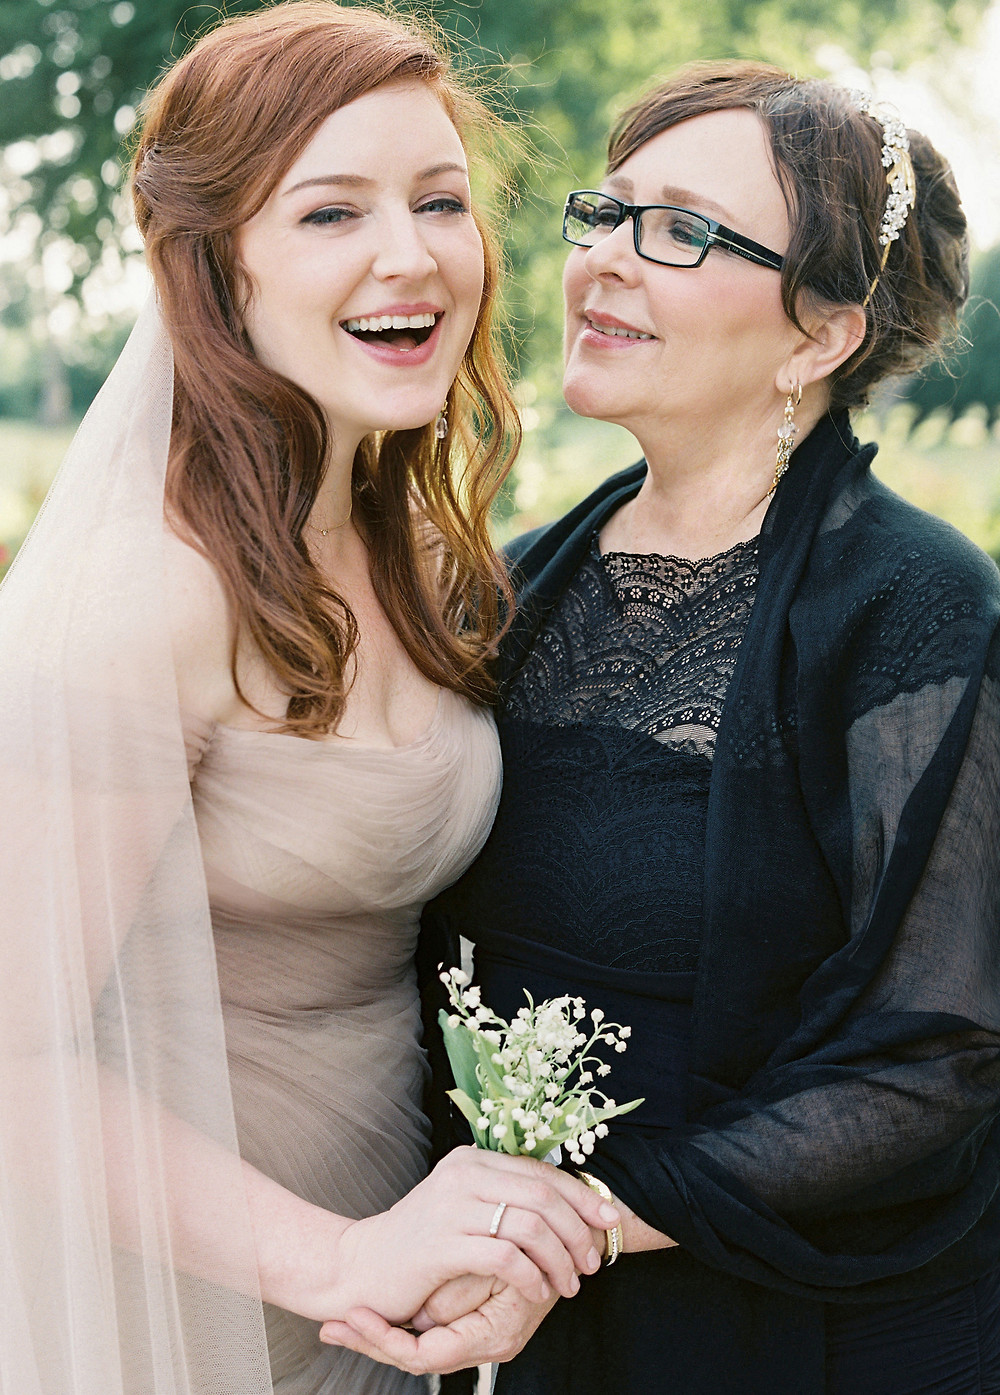 Me & My Mom on my wedding day / Photo by Laura Gordon